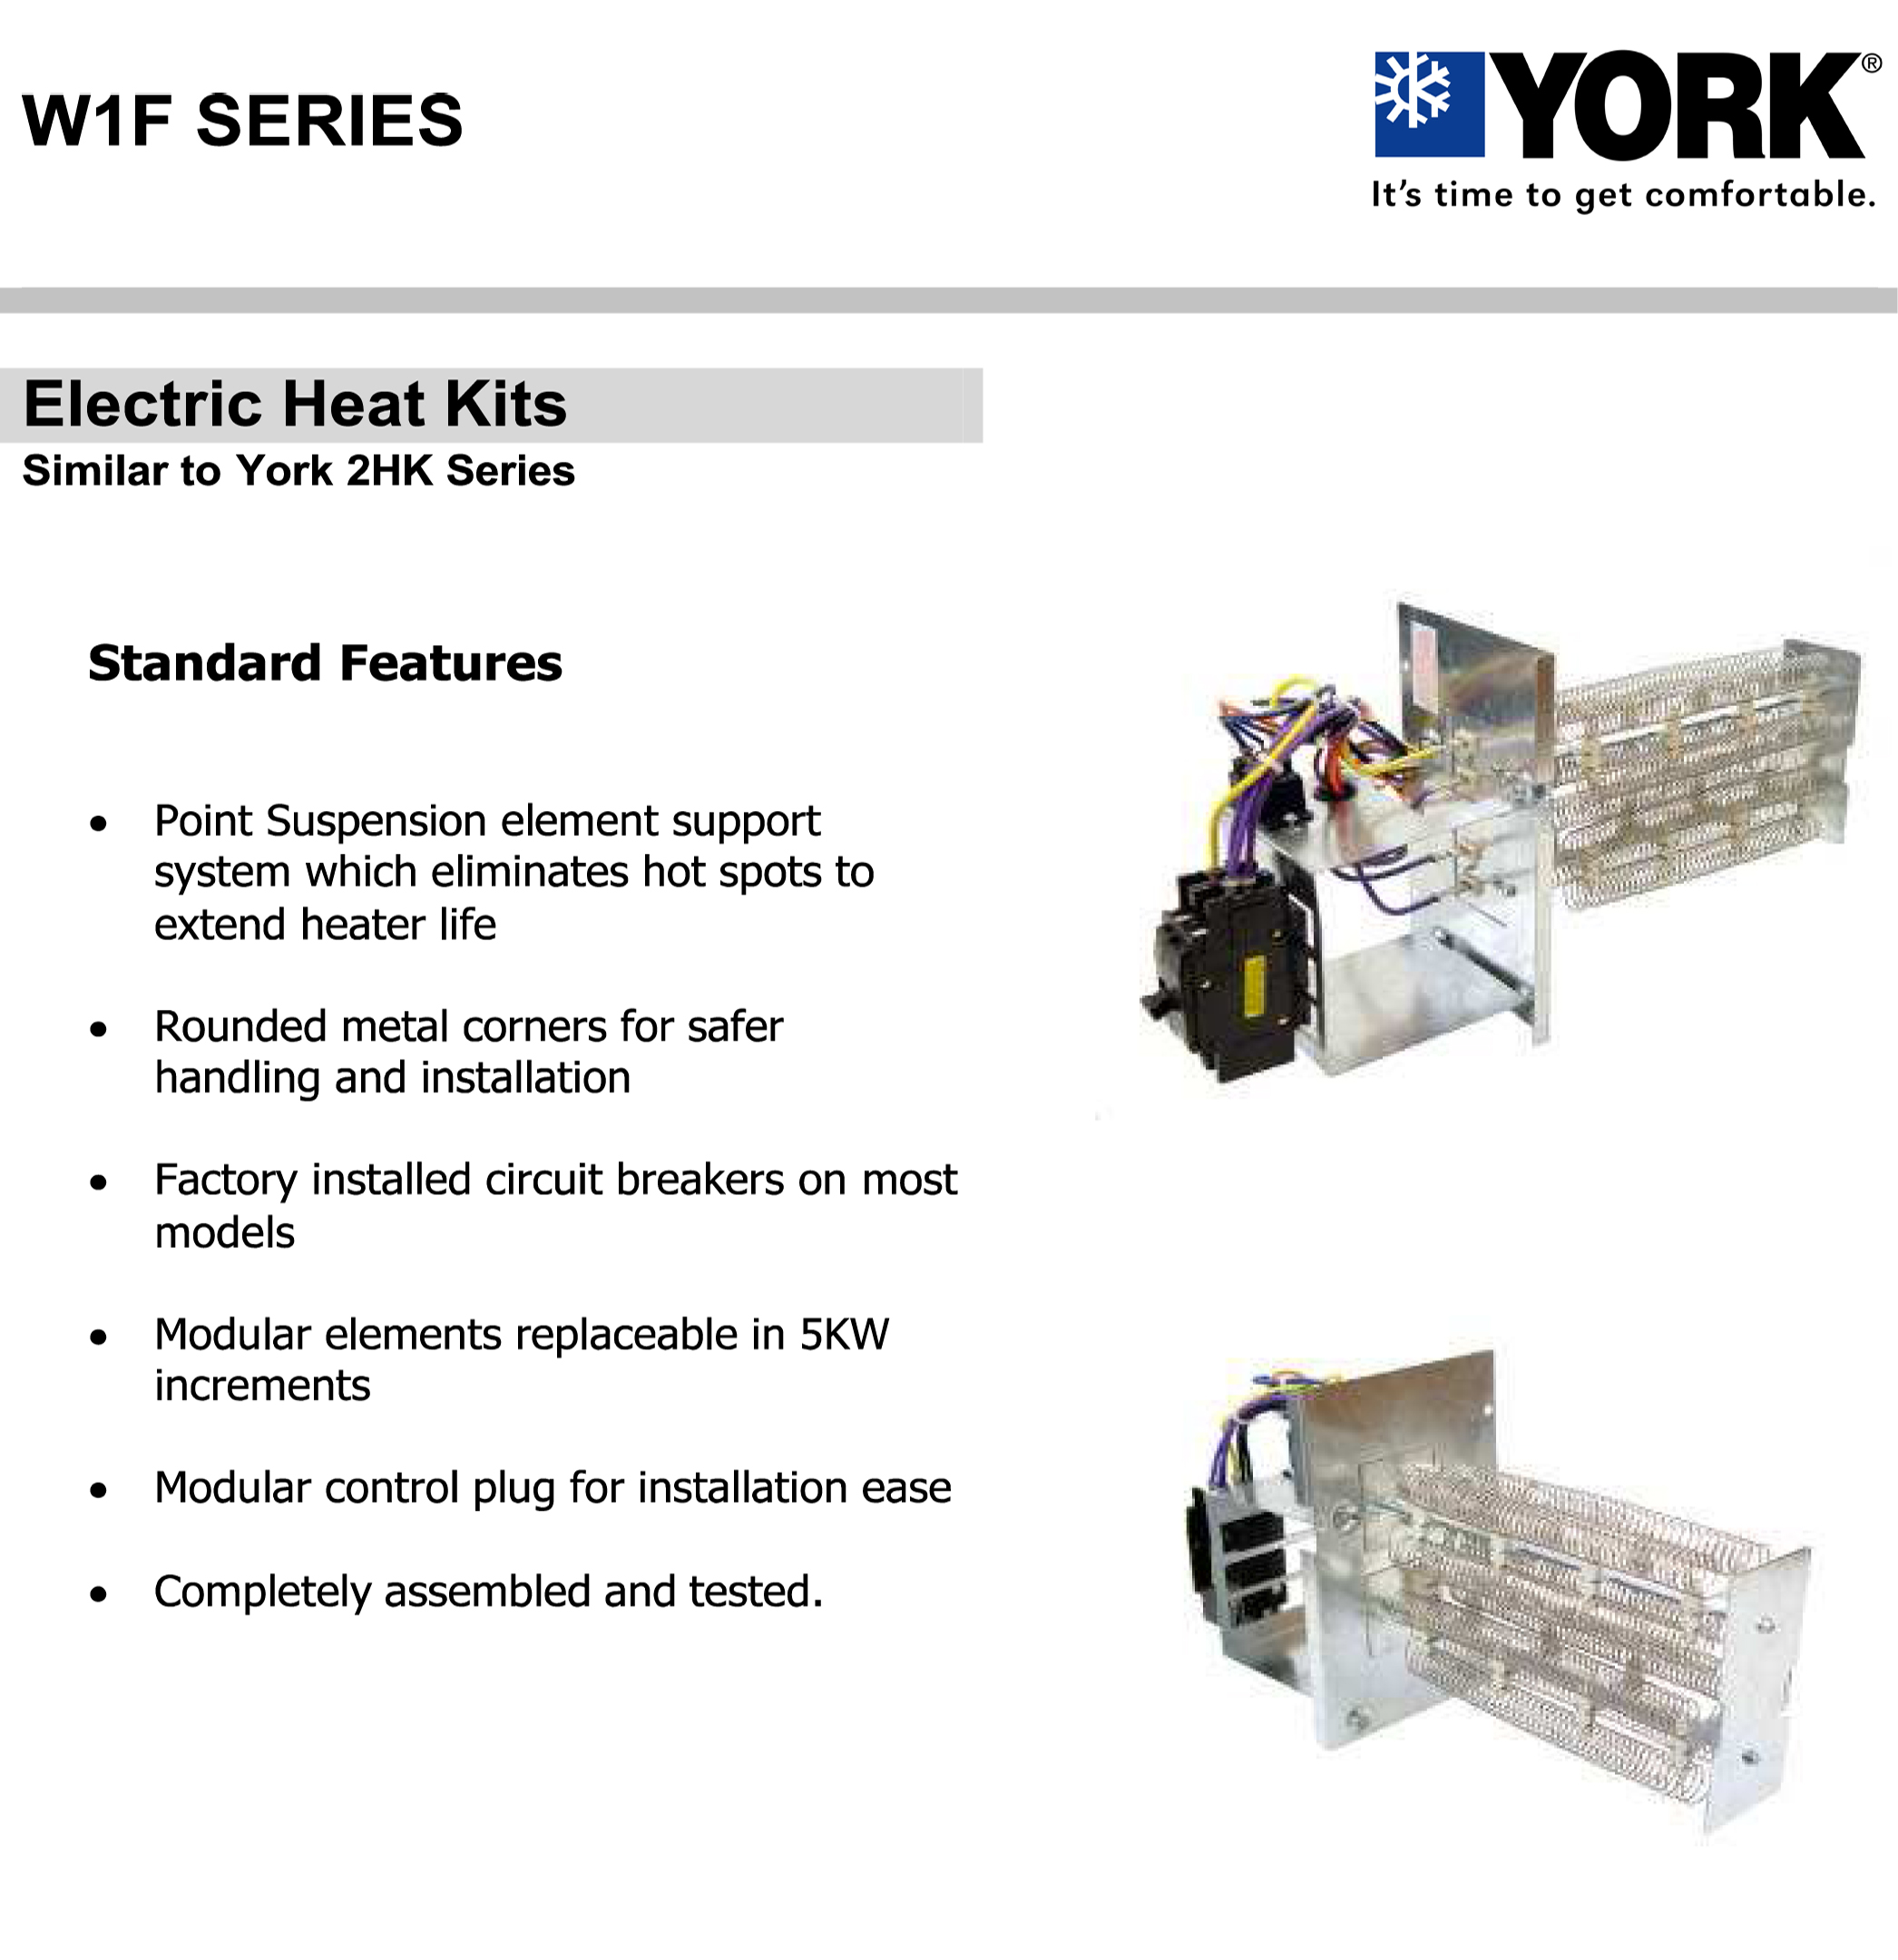 W1F Brochure 10 kw heat strip for york air handlers (click for models) w1f1002 air ease heat pump wiring diagram at fashall.co